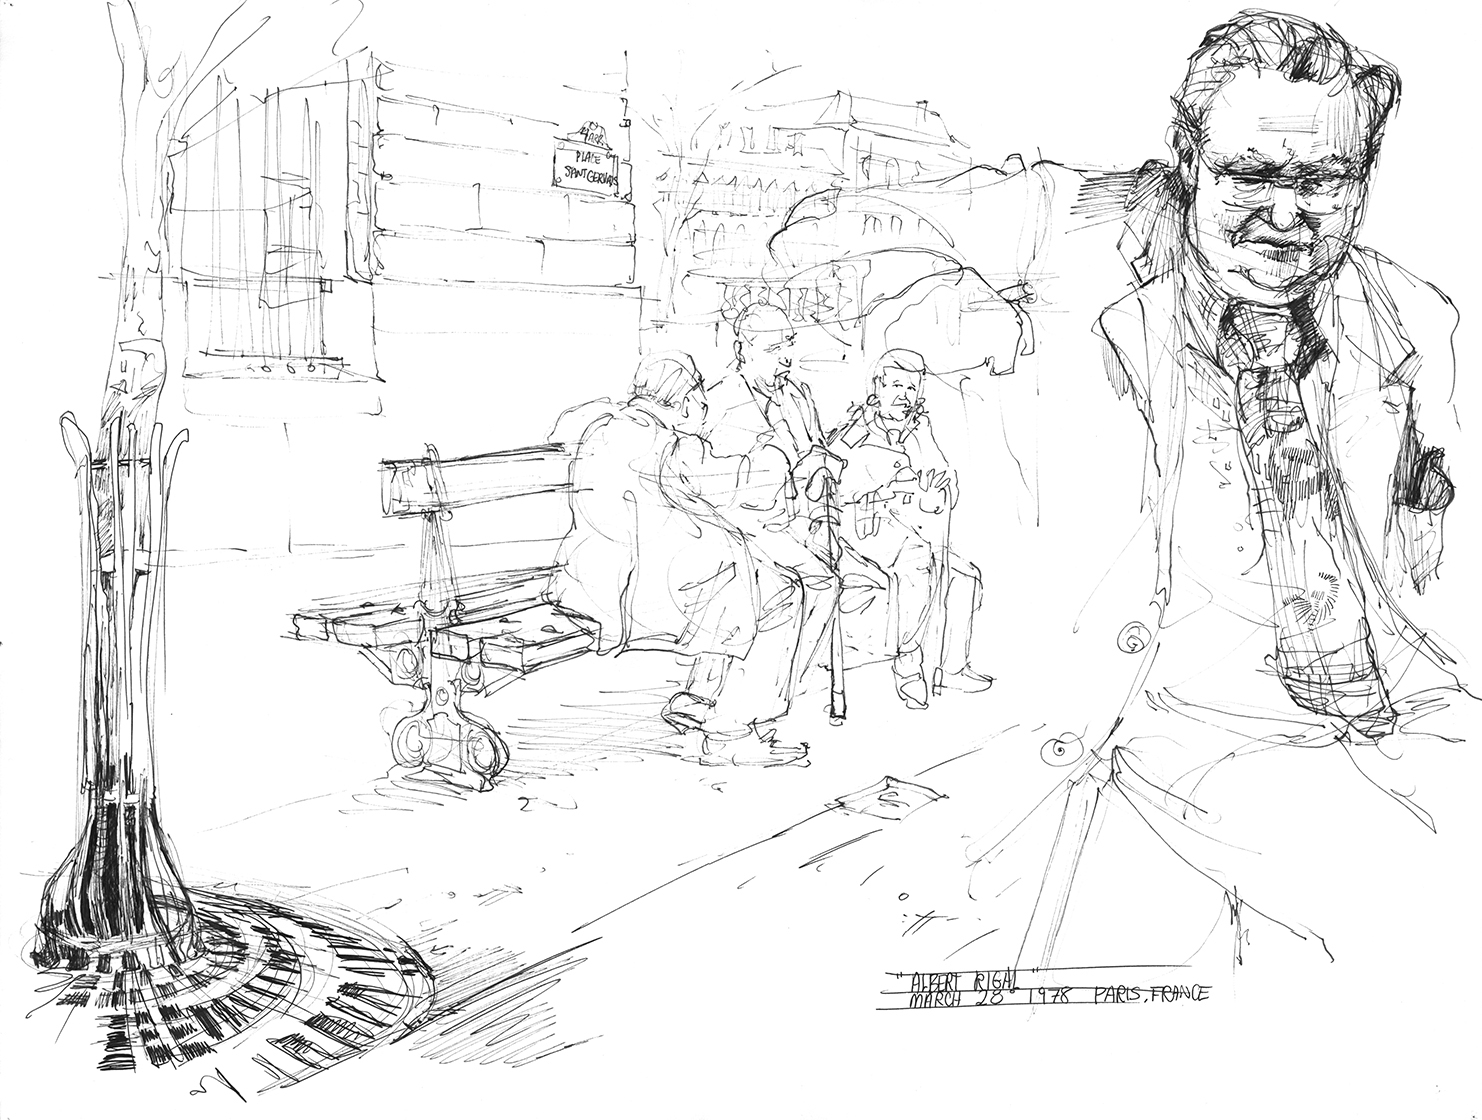 A gentleman named Albert Regal waxing political to his uninterested friends on a streetside bench.